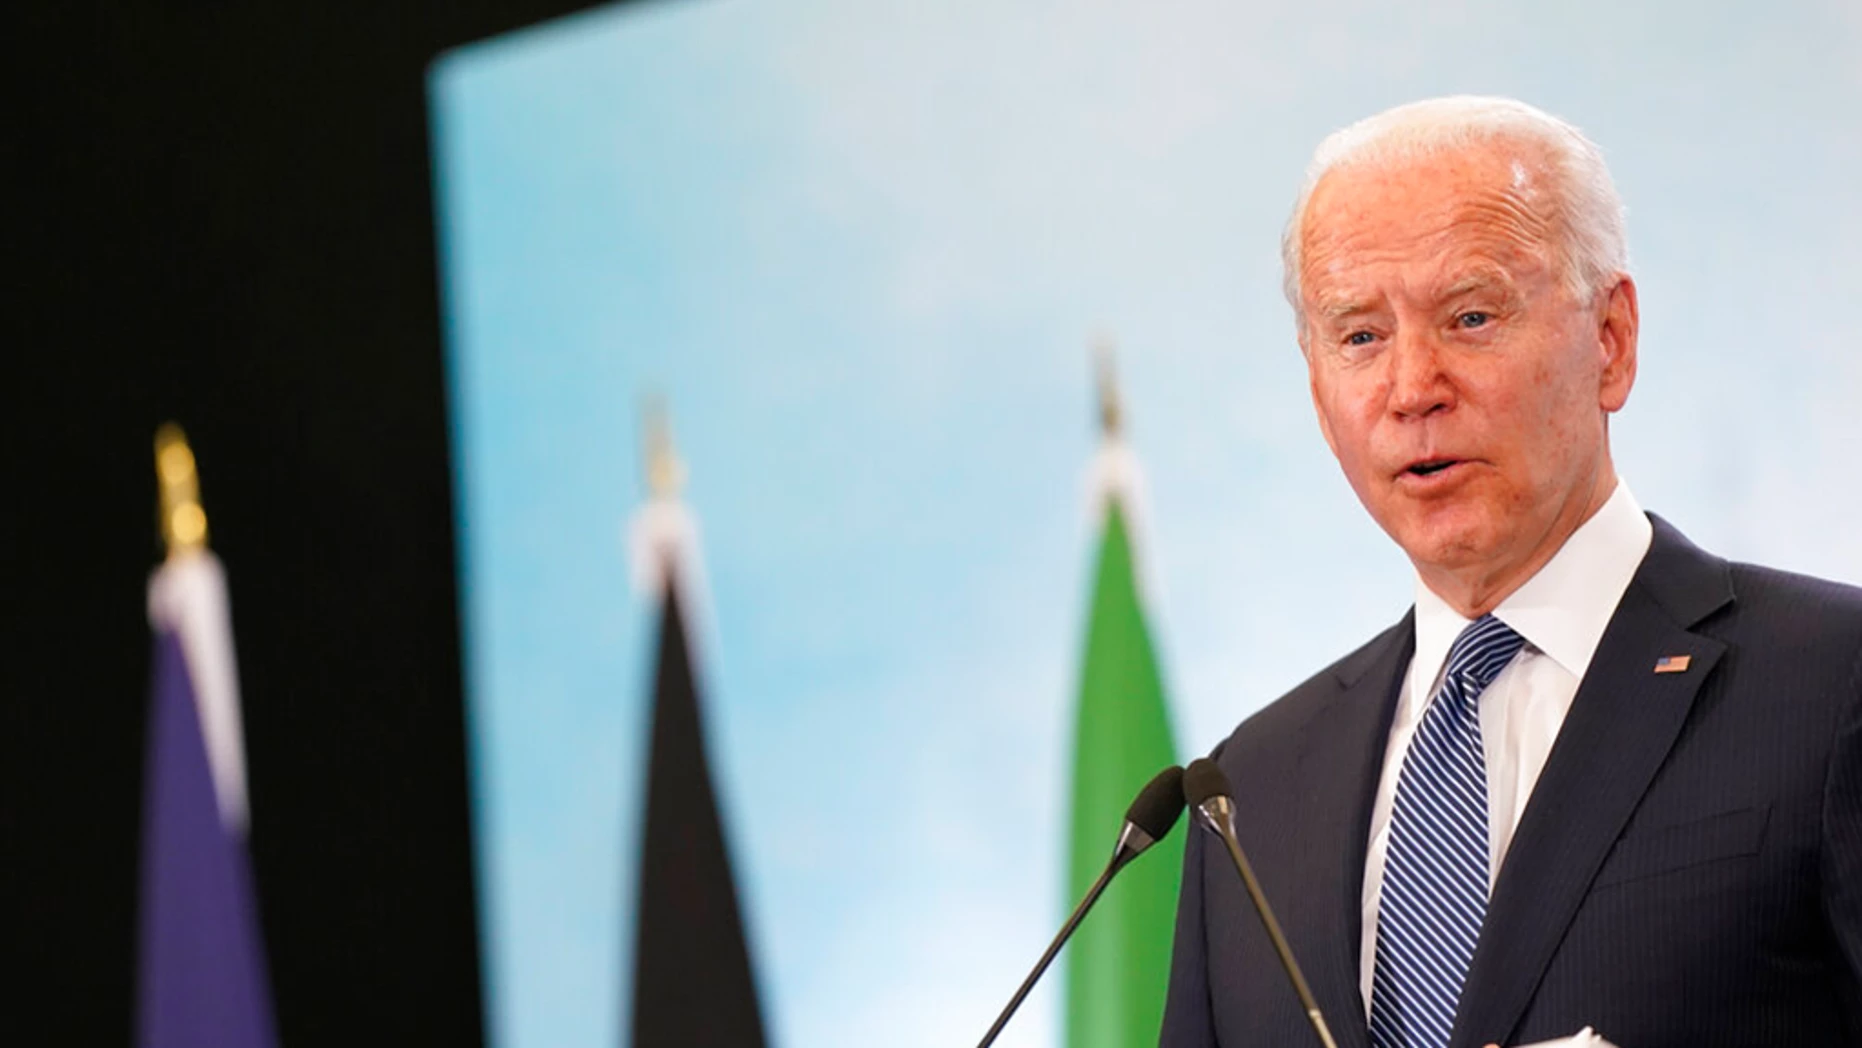 Dementia rumors surface again after Joe Biden mistakes Libya for Syria three times during press conference (video)